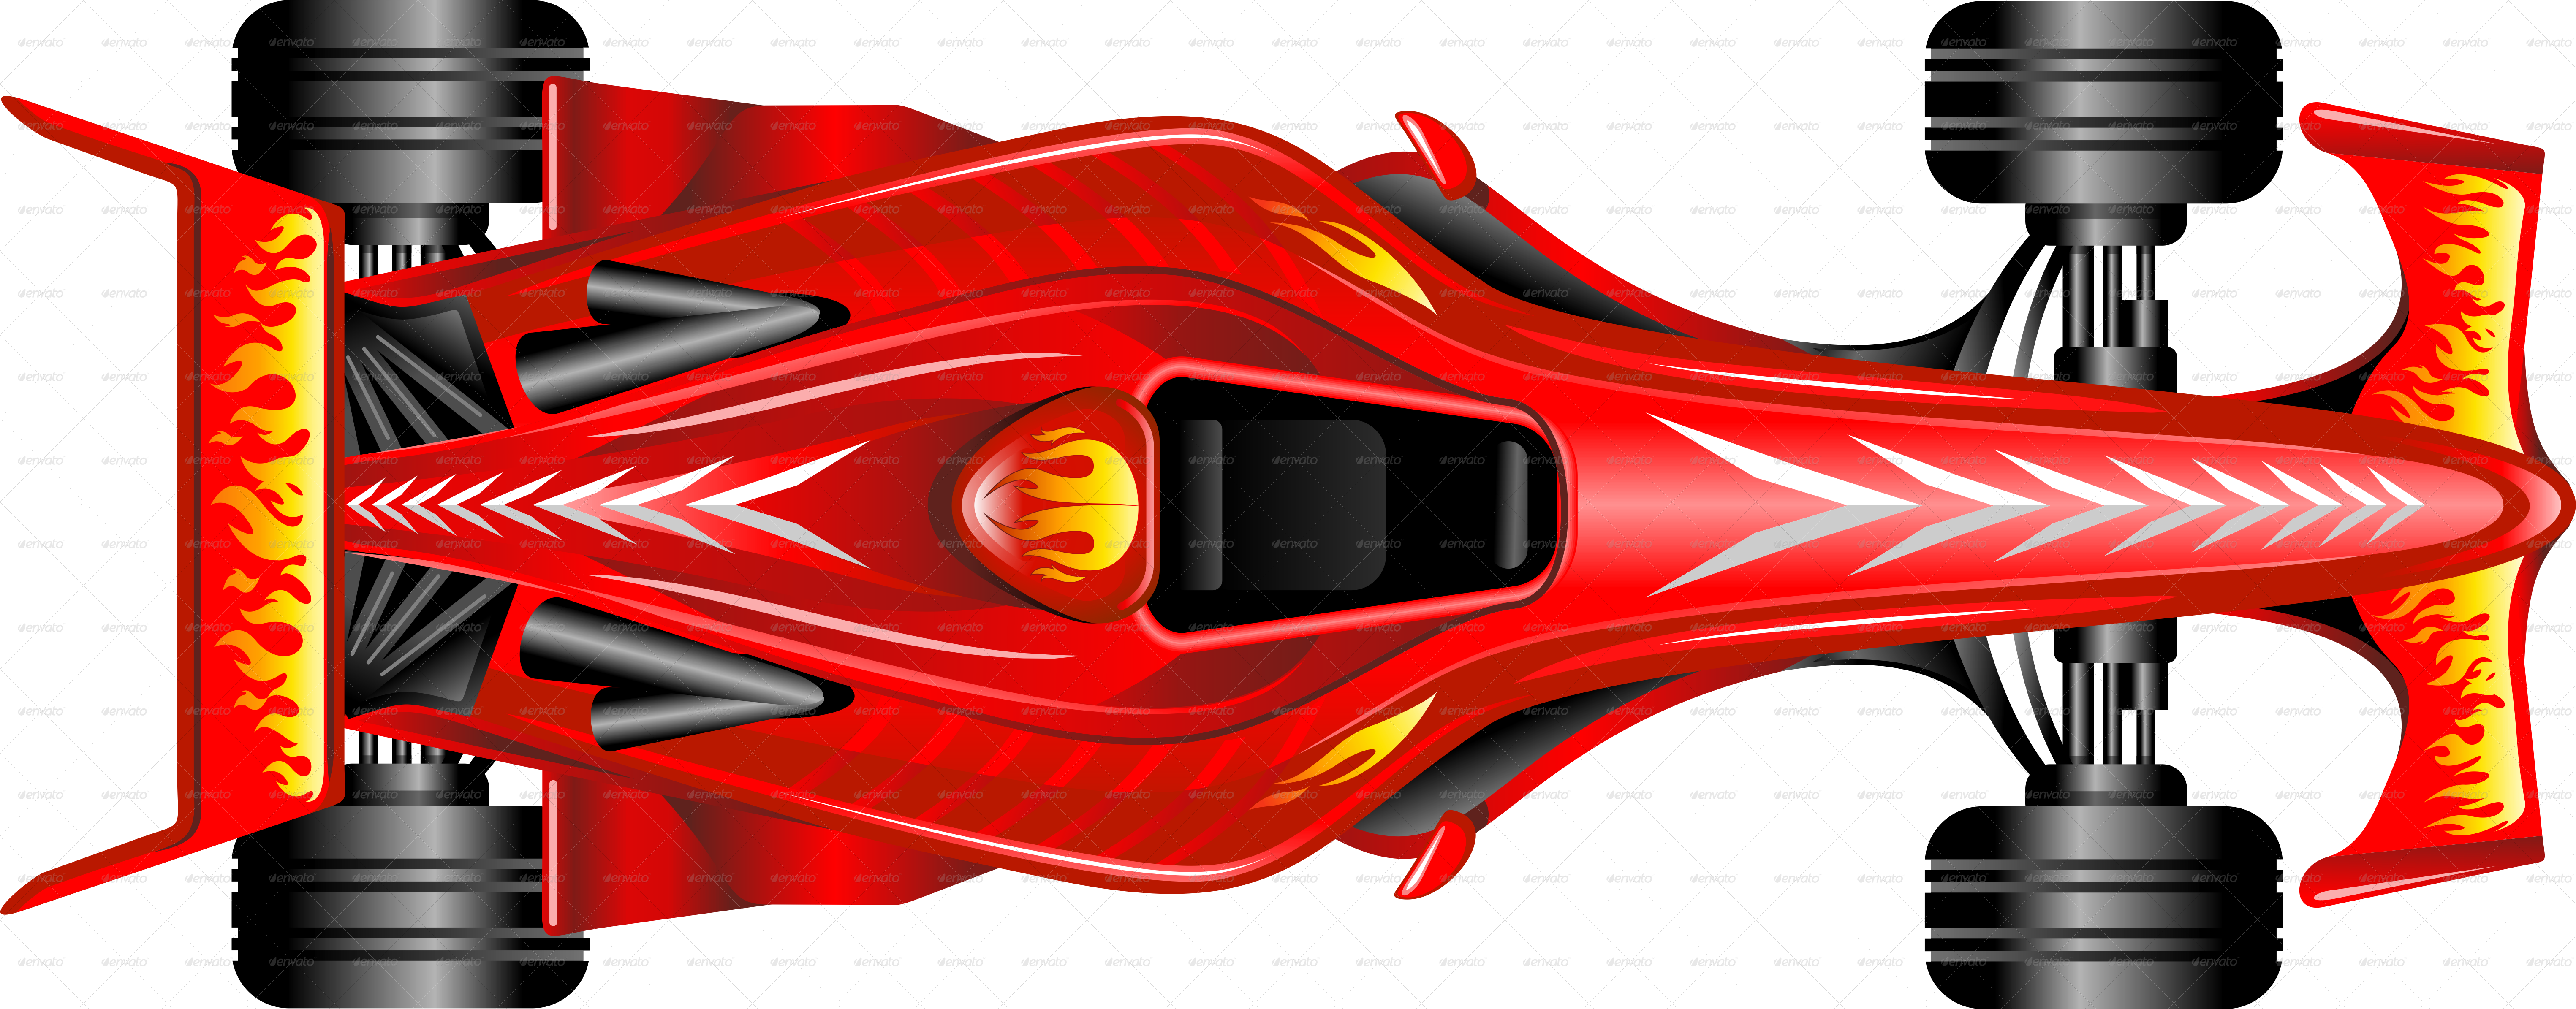 Formula png image purepng. Race clipart racing background